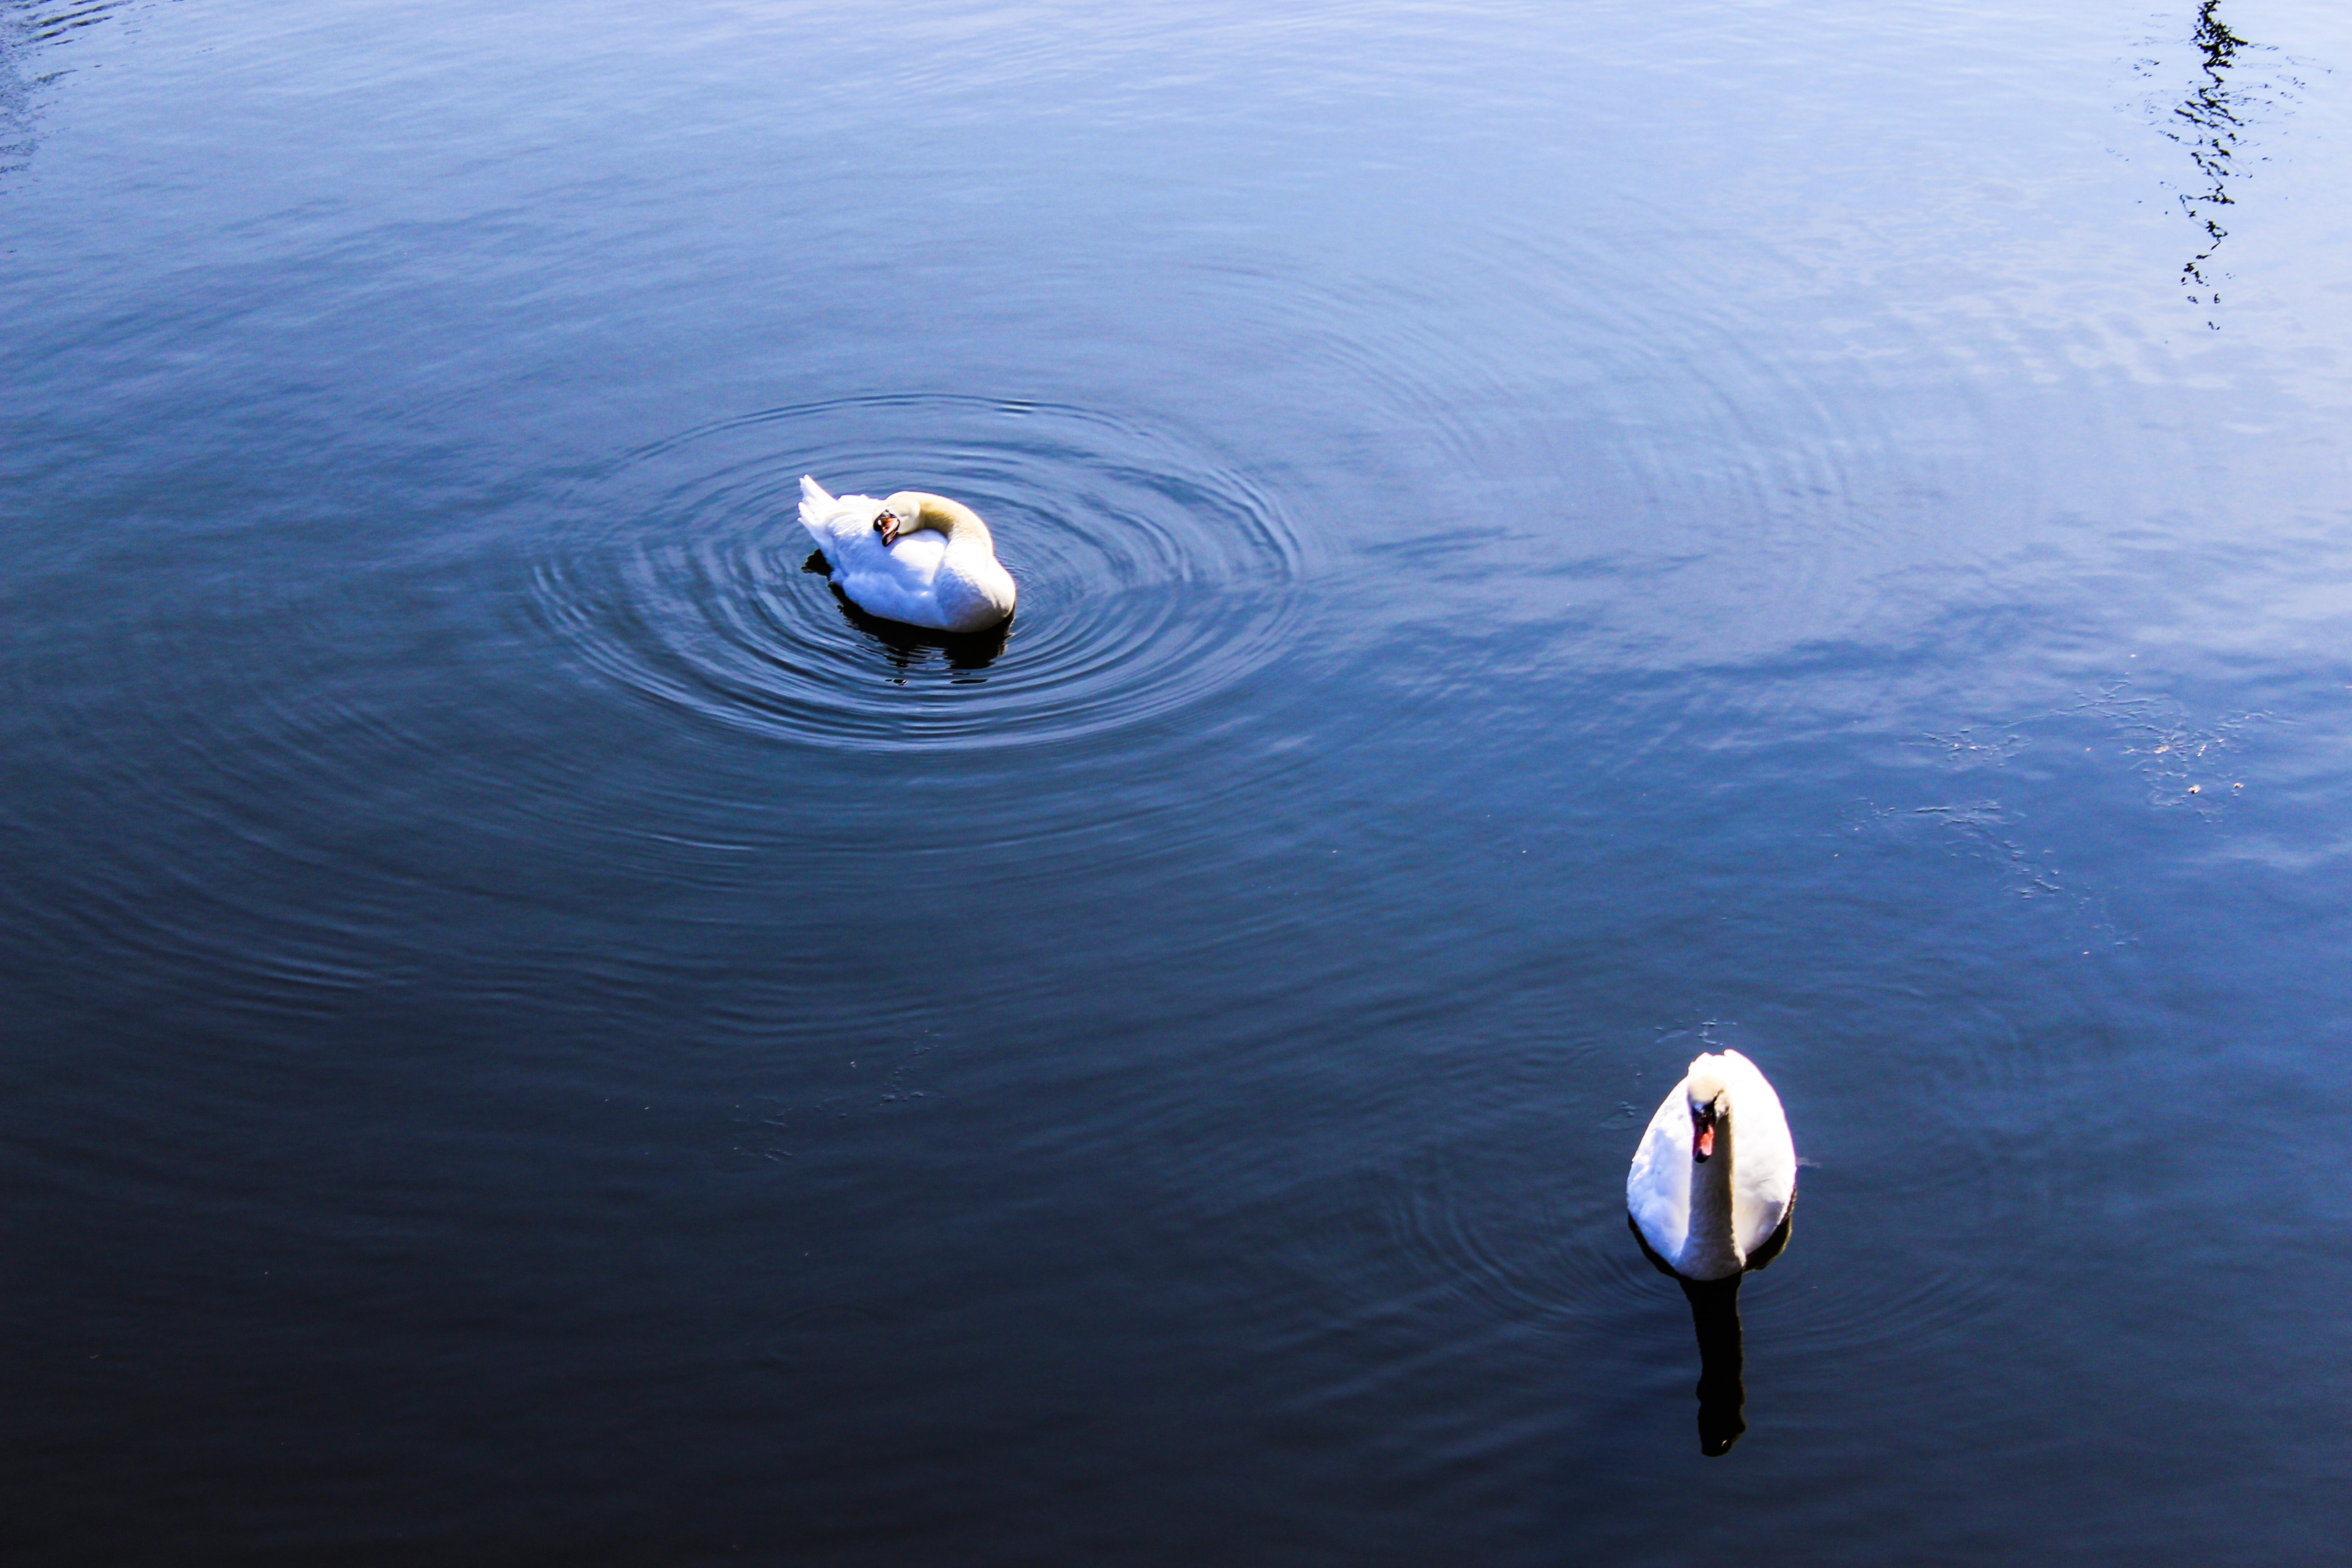 two white swans on body of water at daytime